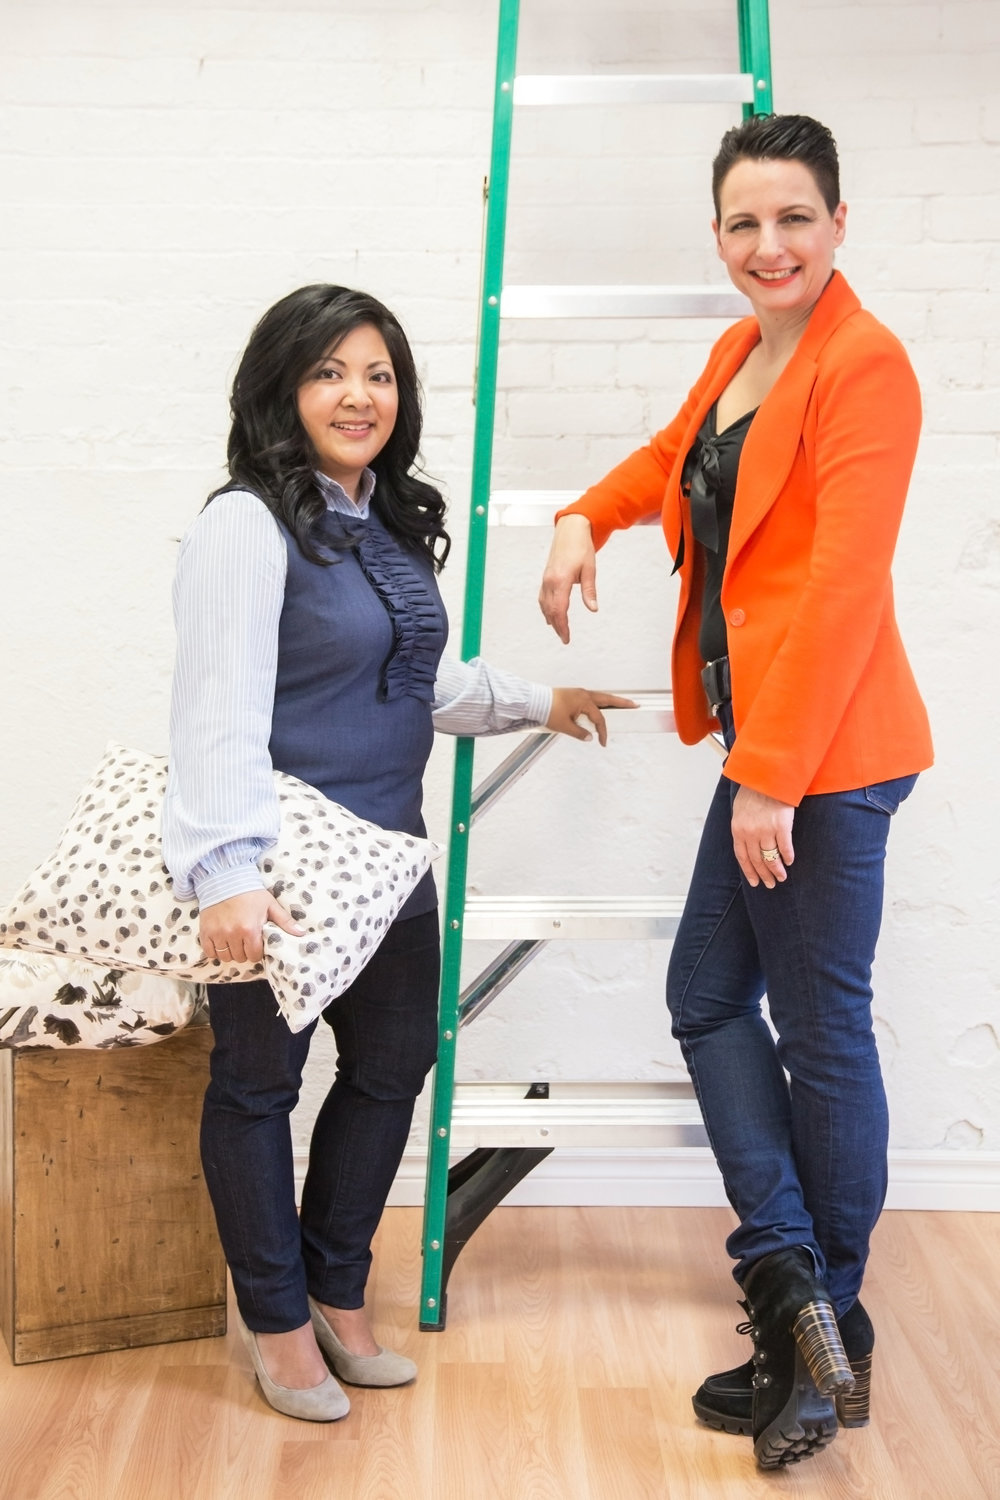 Storyhouse Co. co-founders Jennifer Flores and Cynthia Zamaria; photo credit: LLB Creative